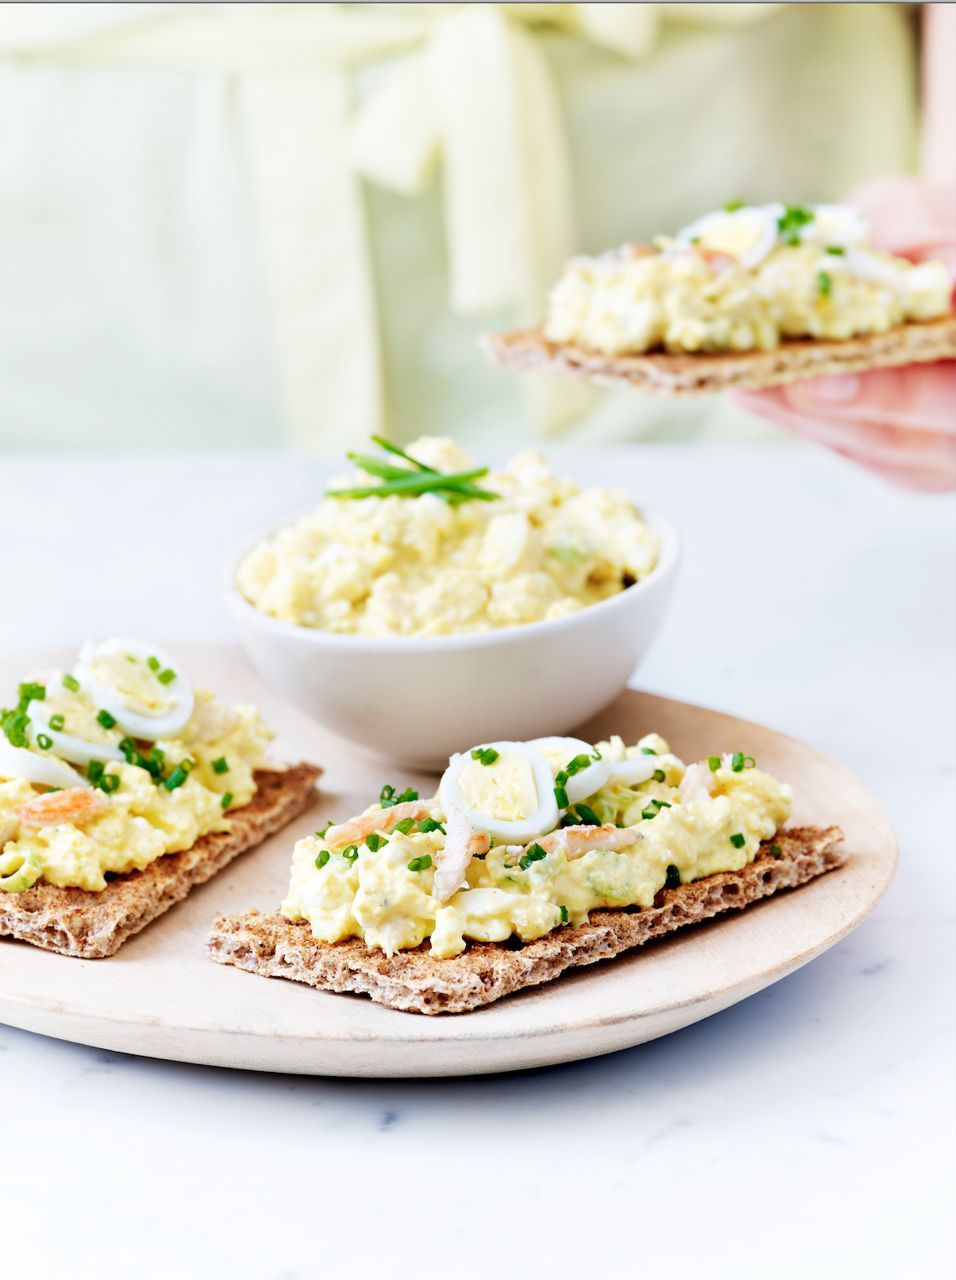 Homemade tuna salad with quail eggs foodstyling sonja peeters food forumfinder Choice Image